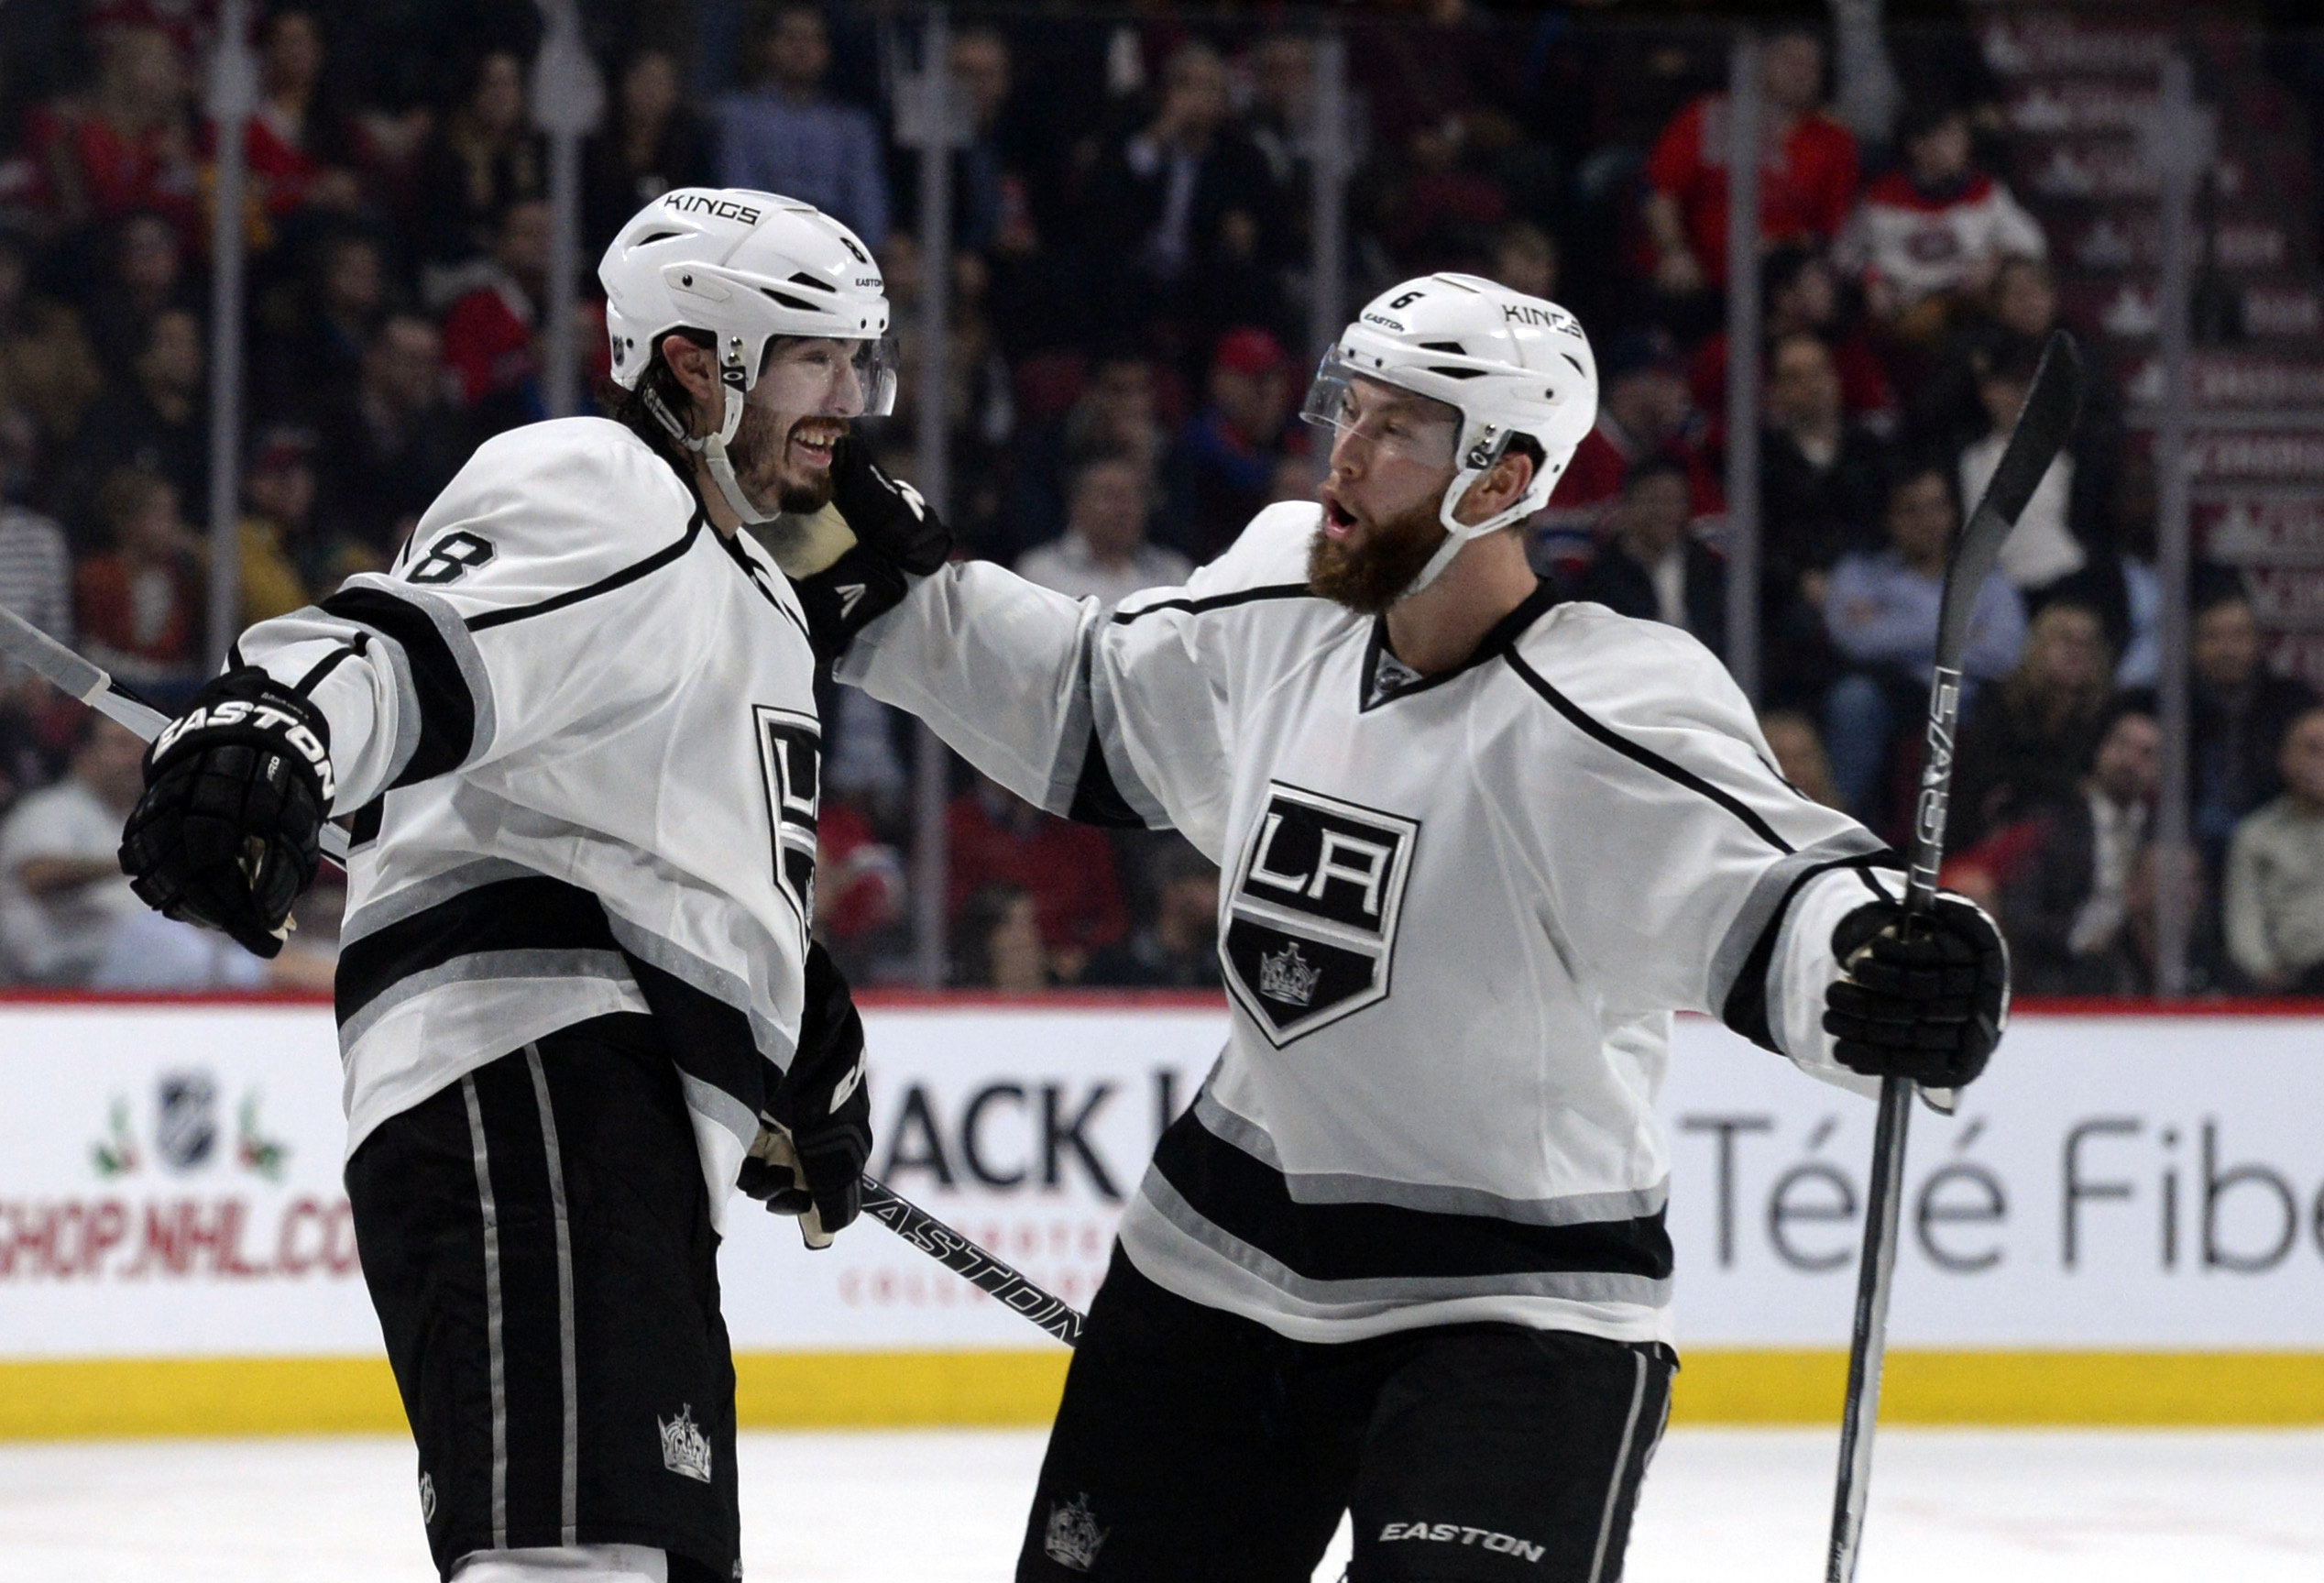 I can't quit you, Jake Muzzin